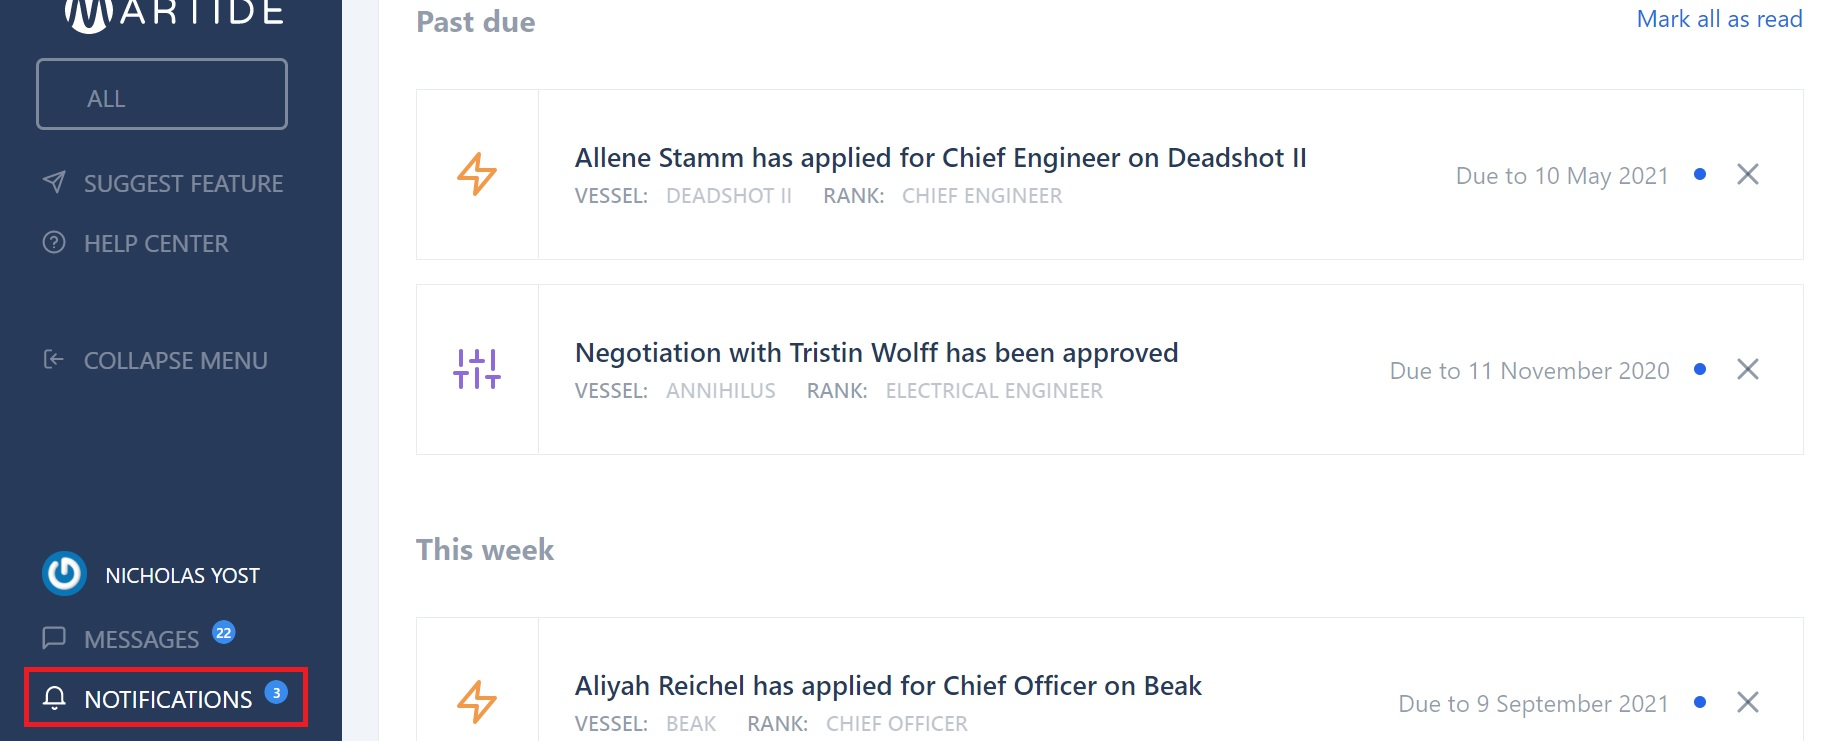 screenshot of the Notifications page.